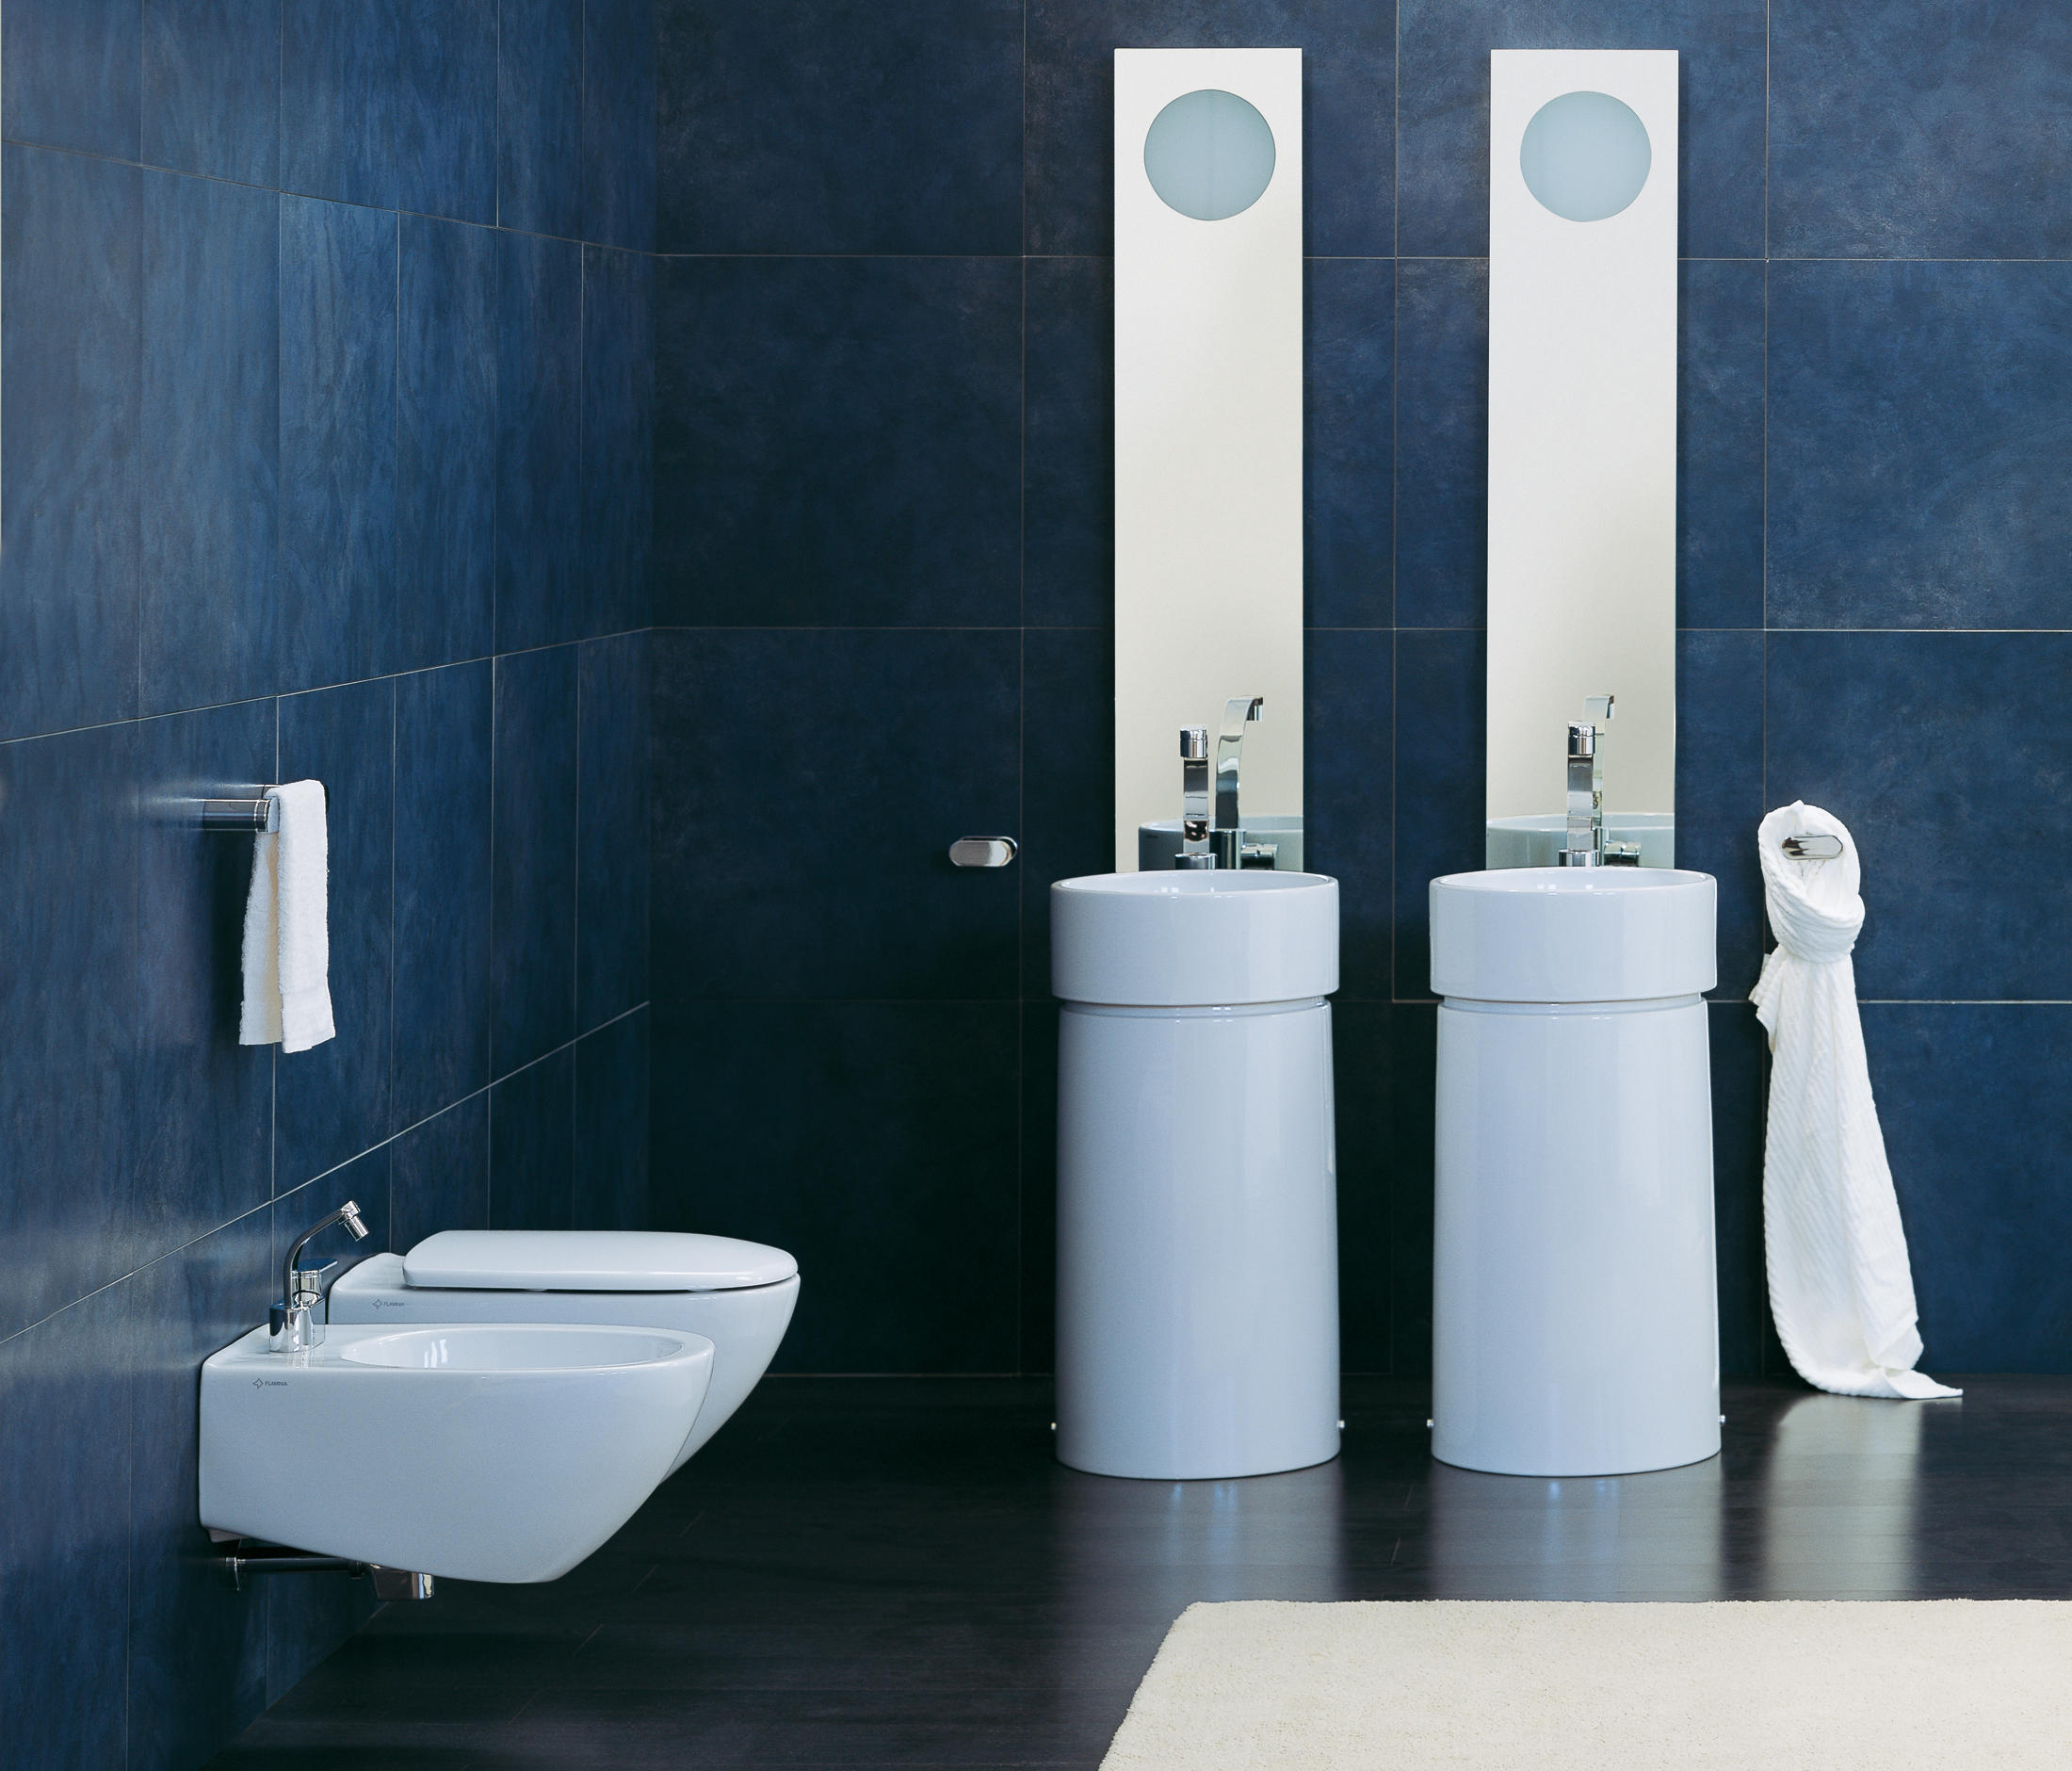 Ceramica Flaminia Spin.Spin Wc Bidet Designer Furniture Architonic